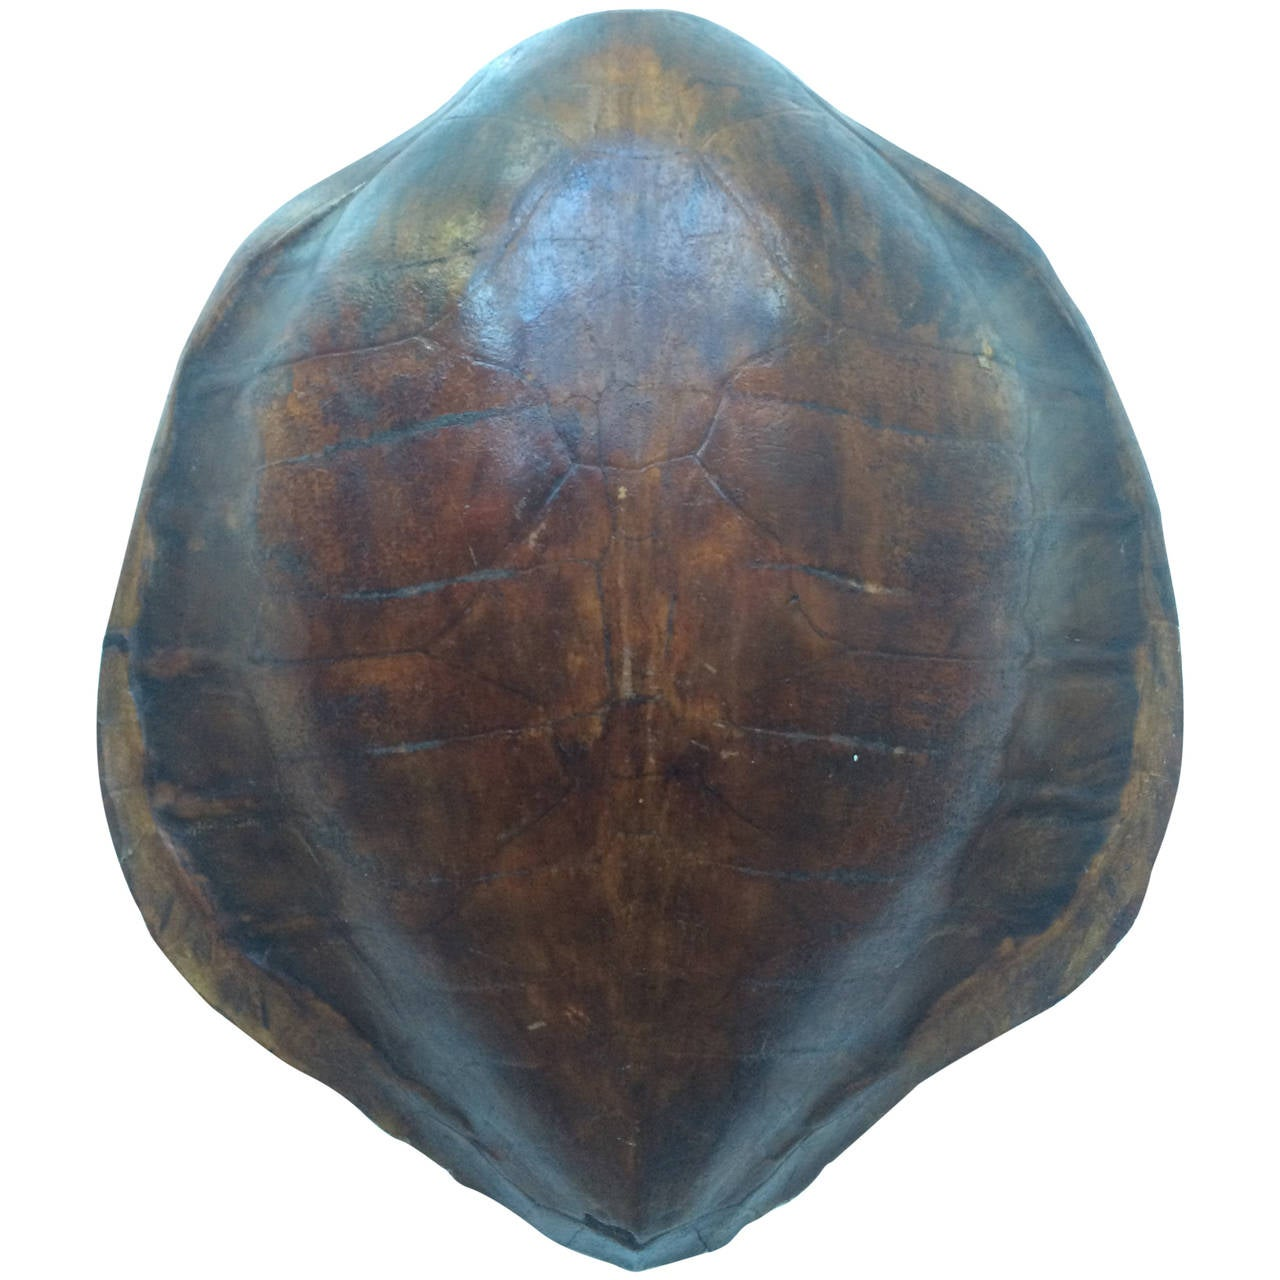 19th Century Sea Turtle Shell Or Carapace For Sale At 1stdibs